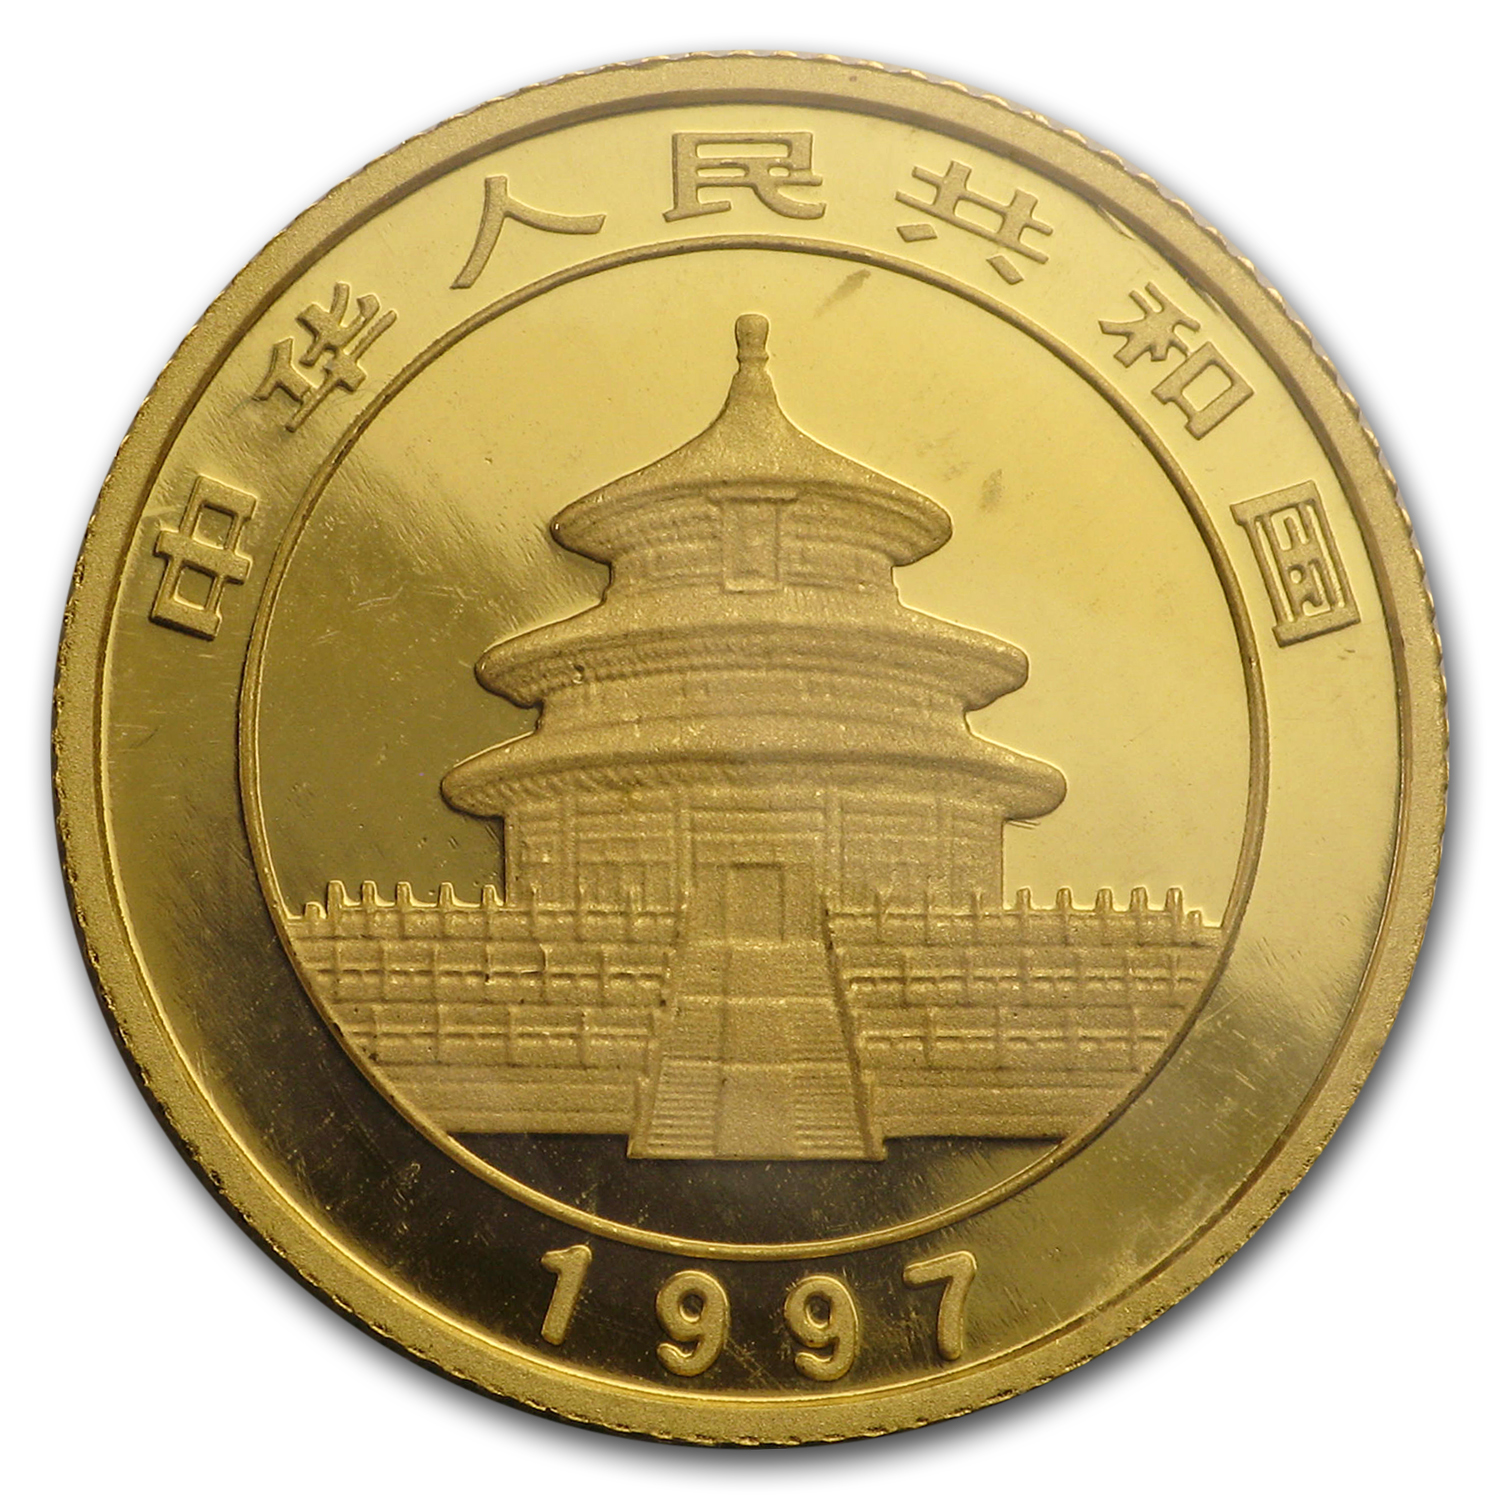 1997 (1/10 oz) Gold Chinese Pandas - Large Date (Sealed)